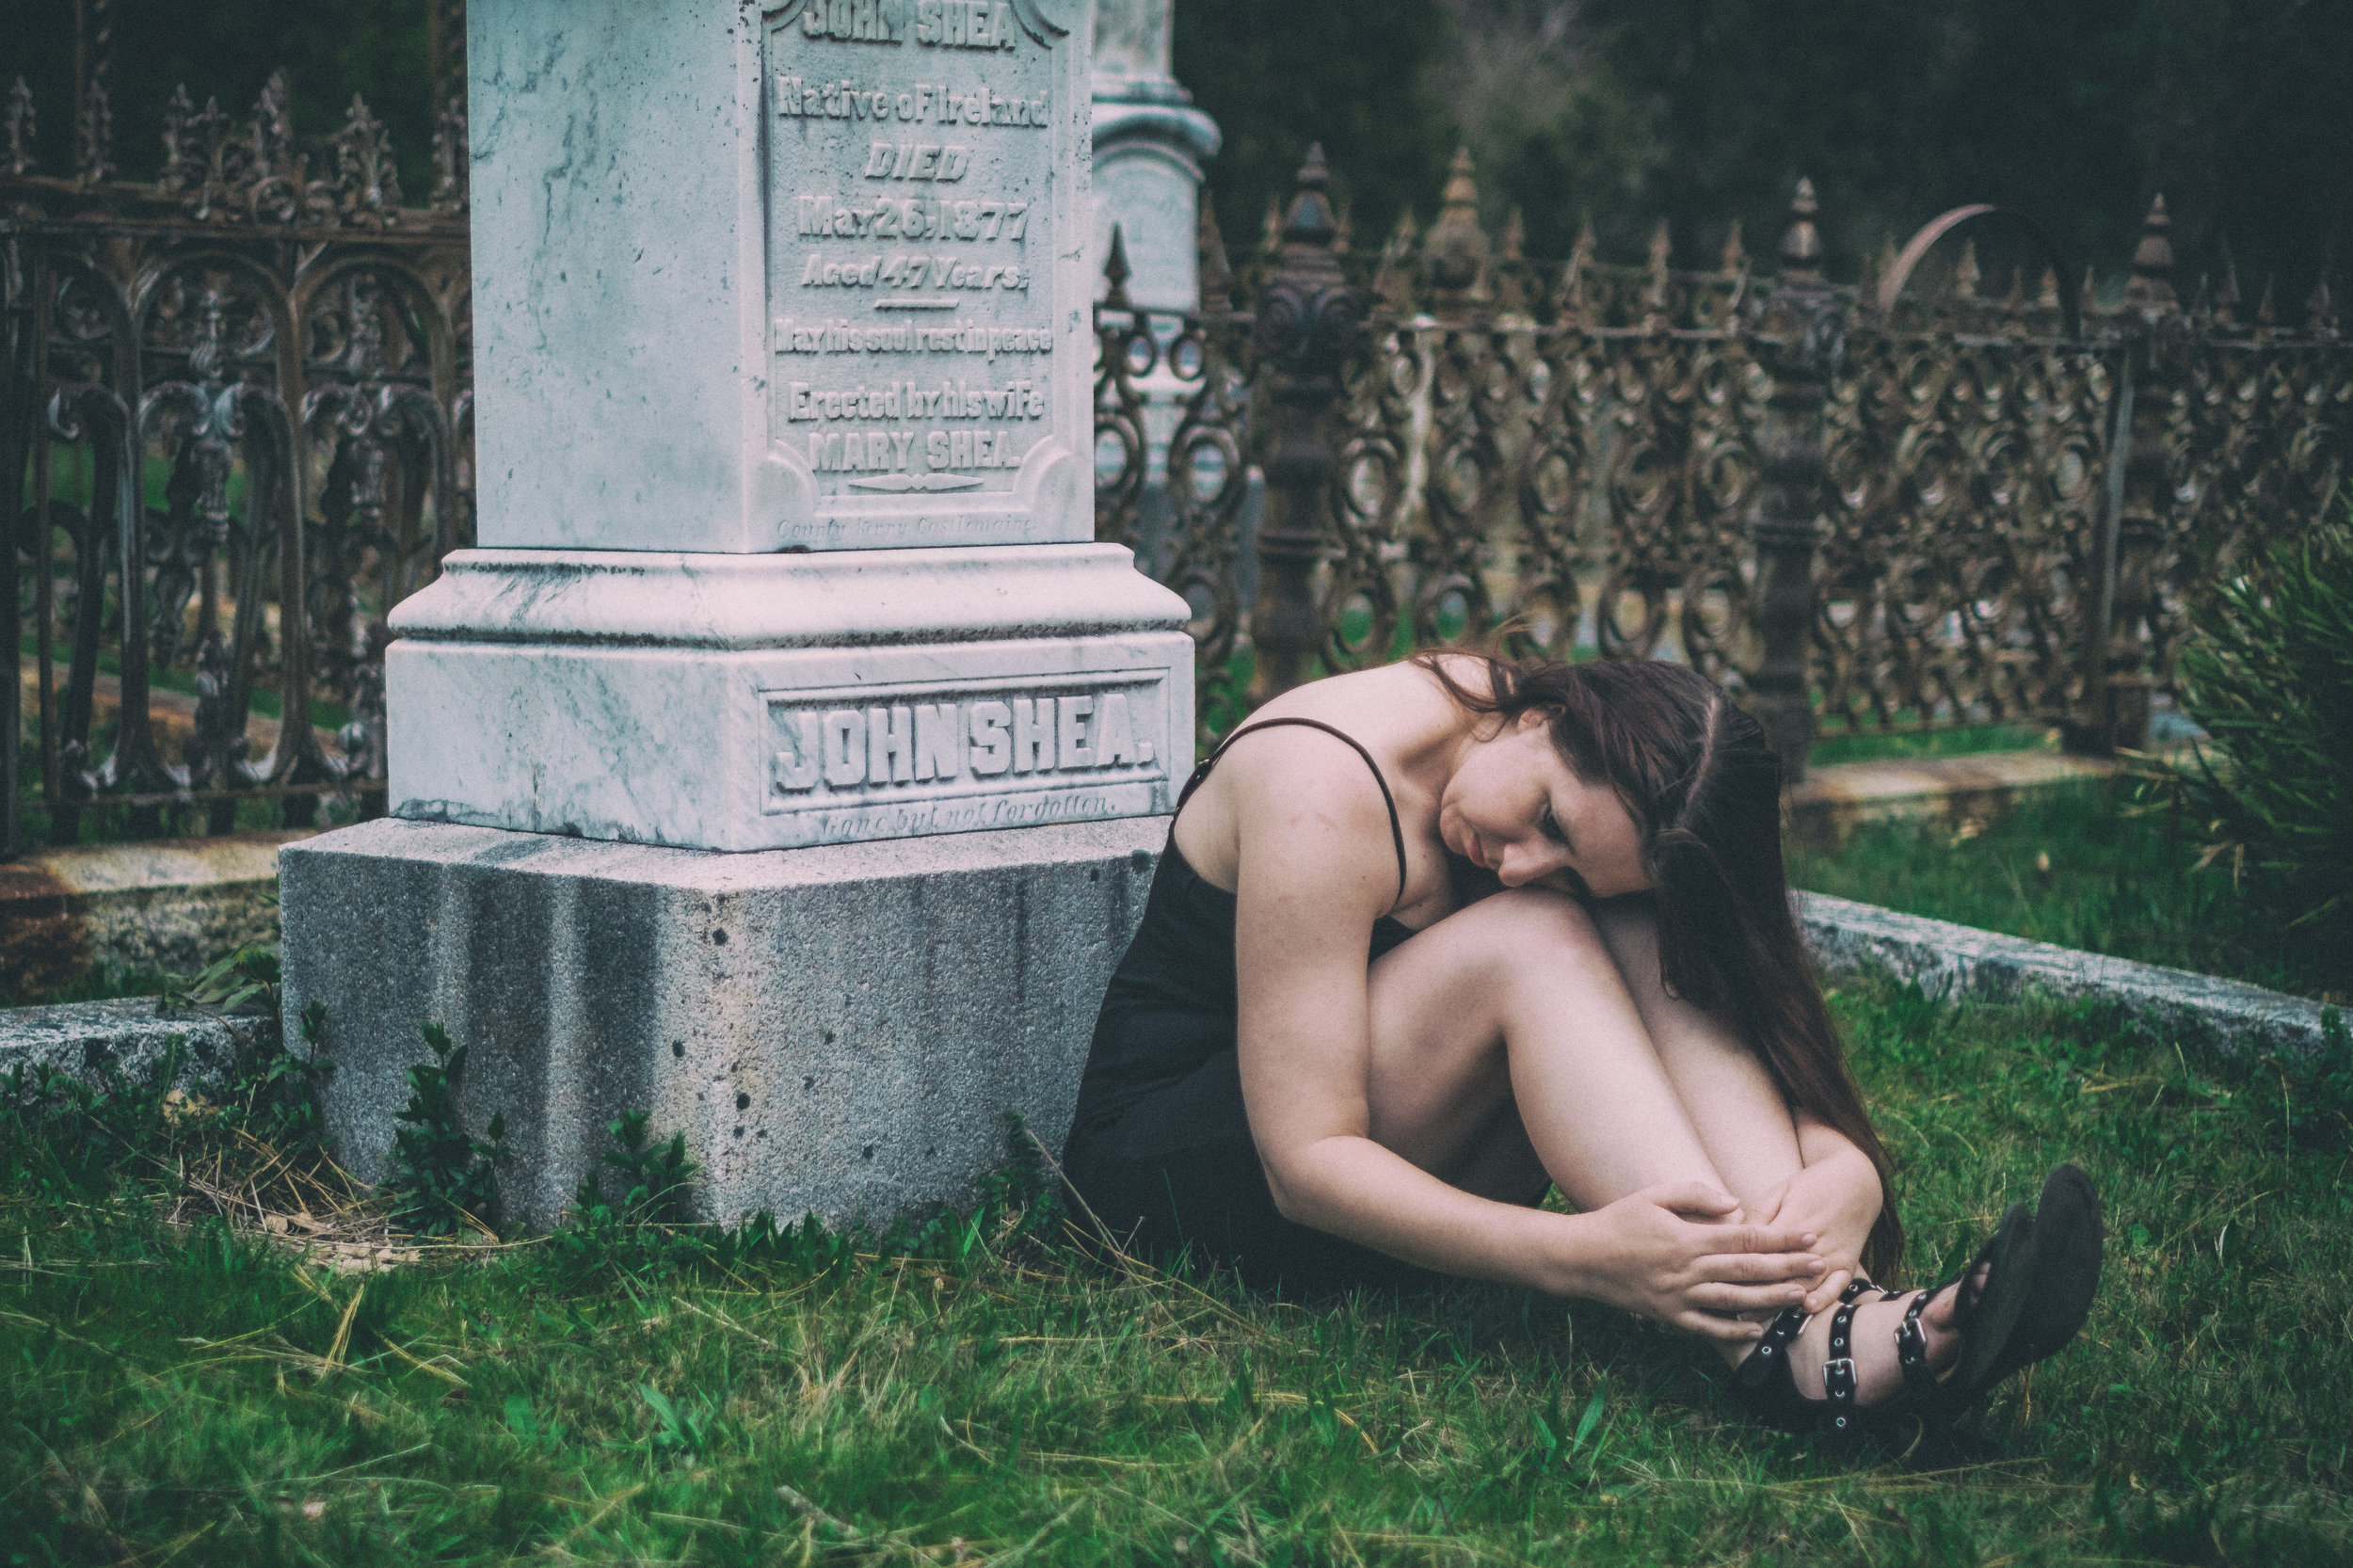 After taking photos at the tulip garden, we headed down to the cemetery outside downtown Nevada City for some moody and emotional portraits.